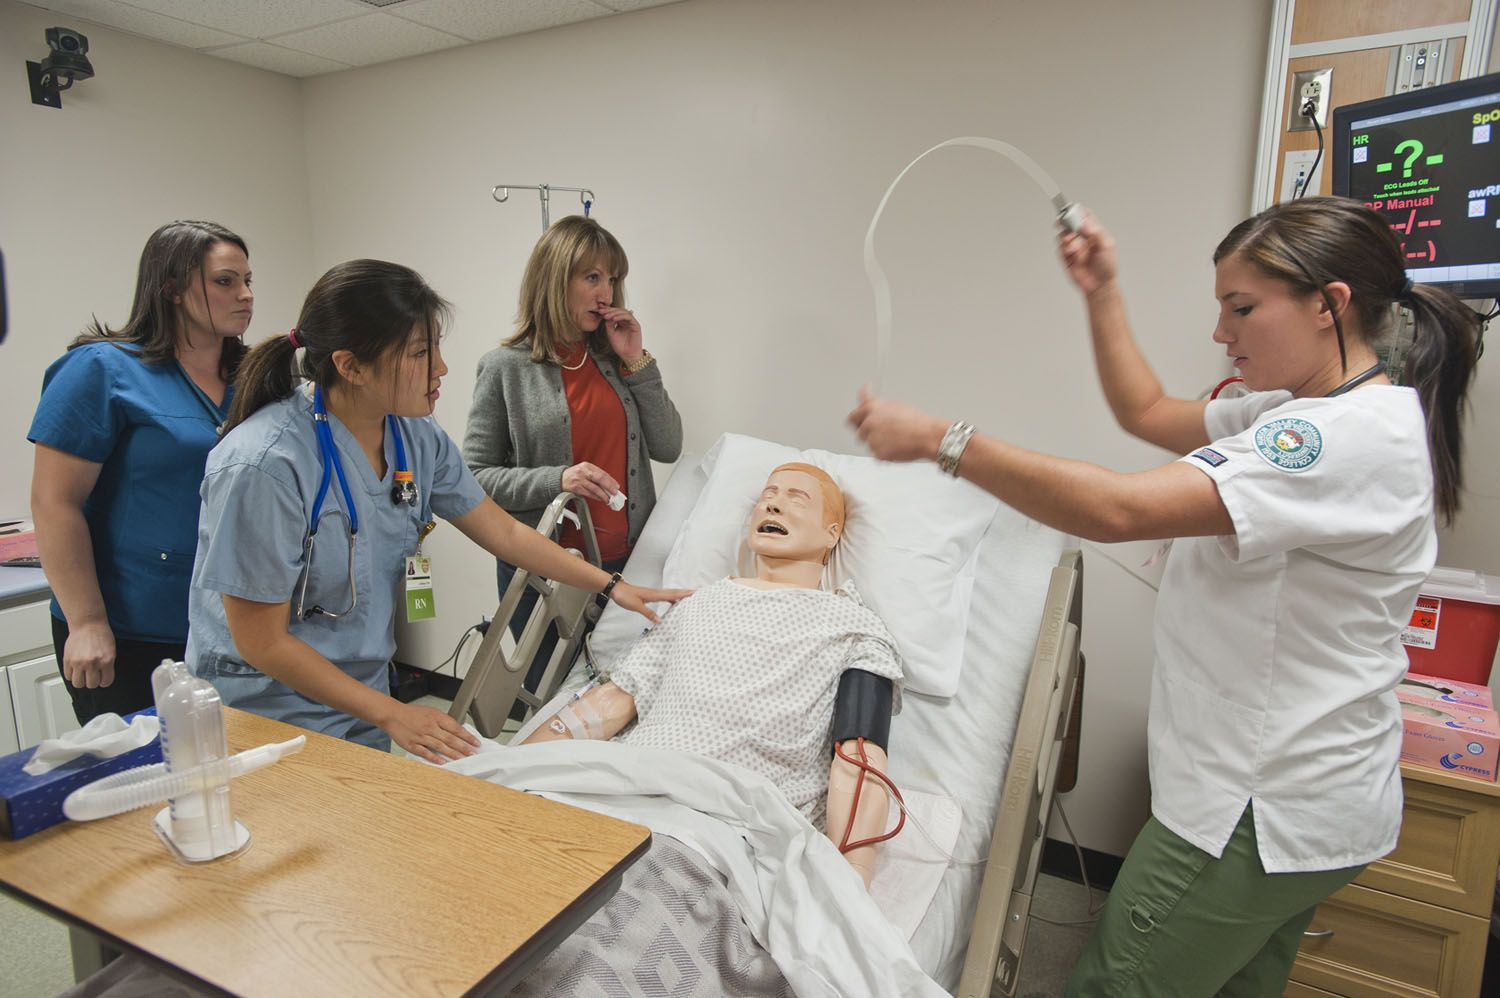 A Great Way to Practice For Medical Assistant Training